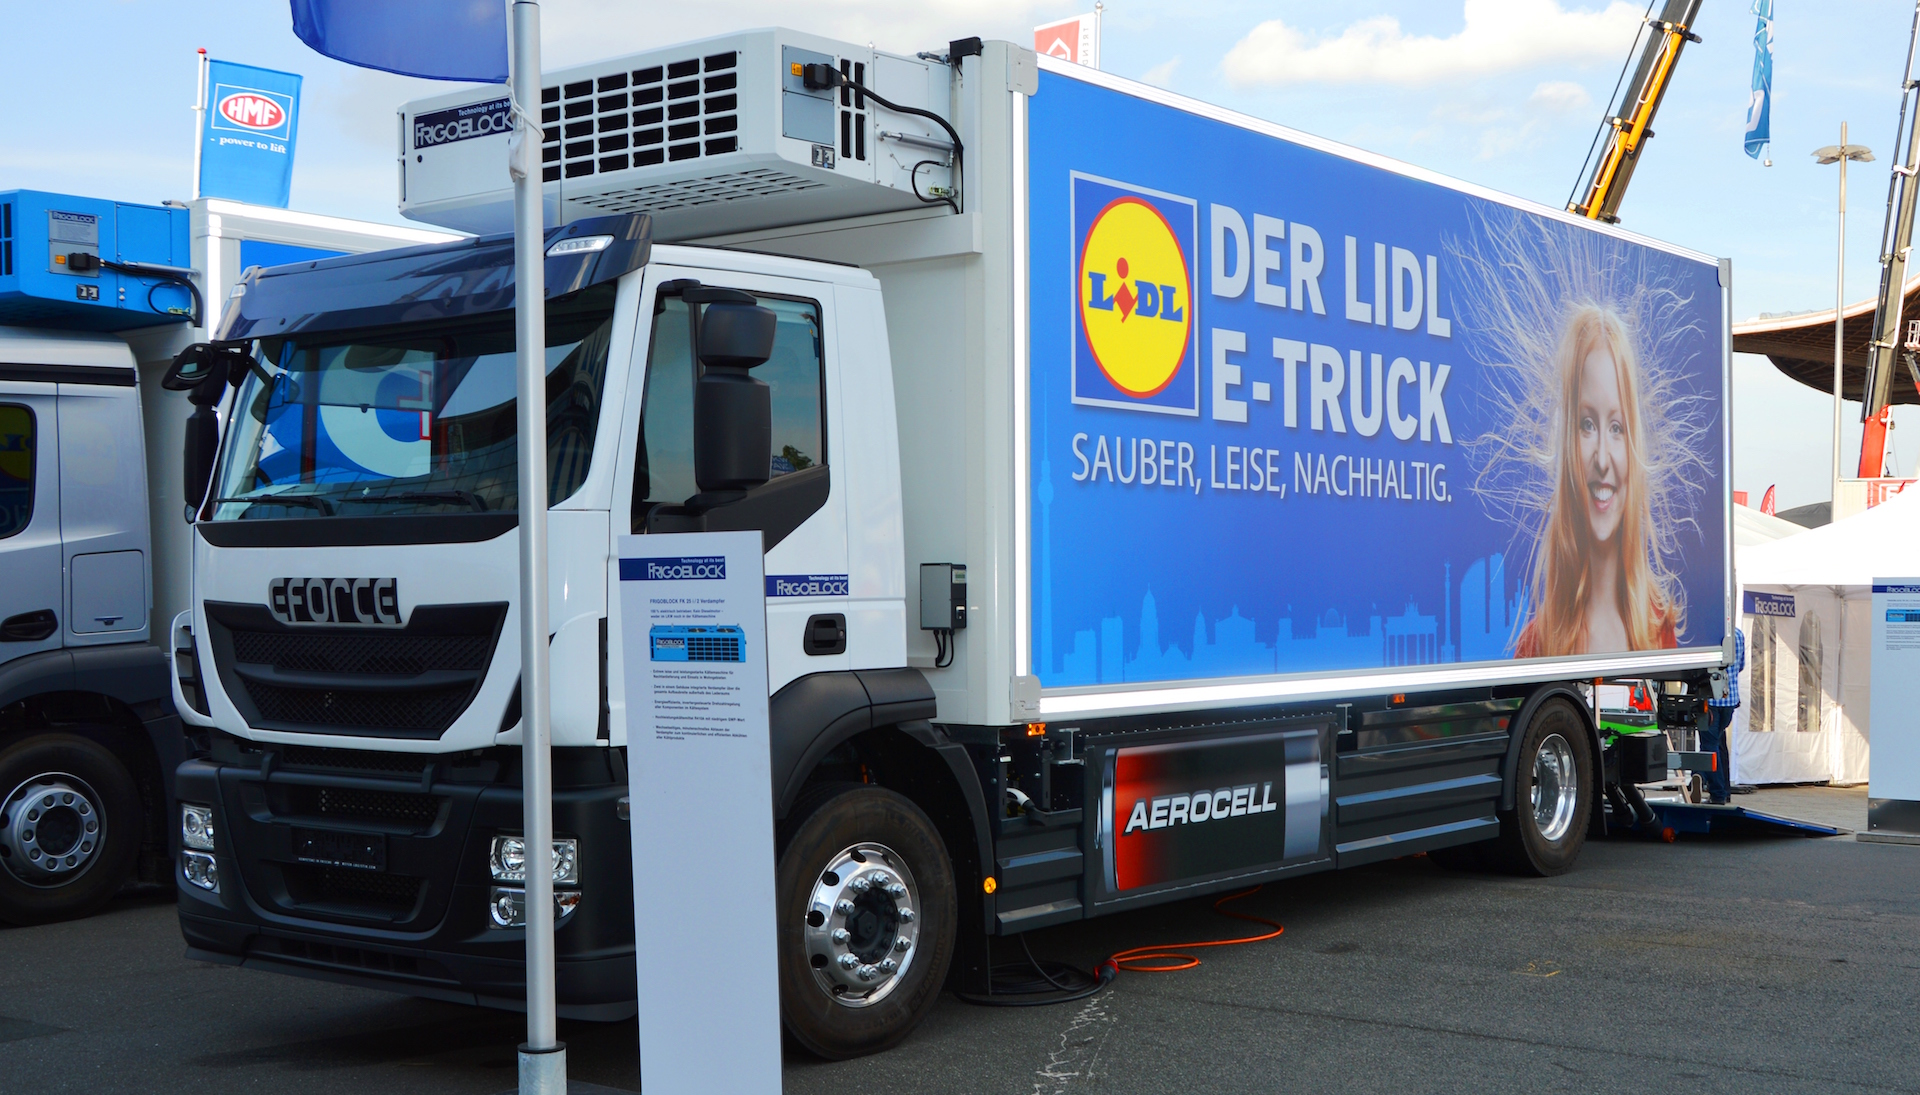 a parked electric truck from the German company Lidl